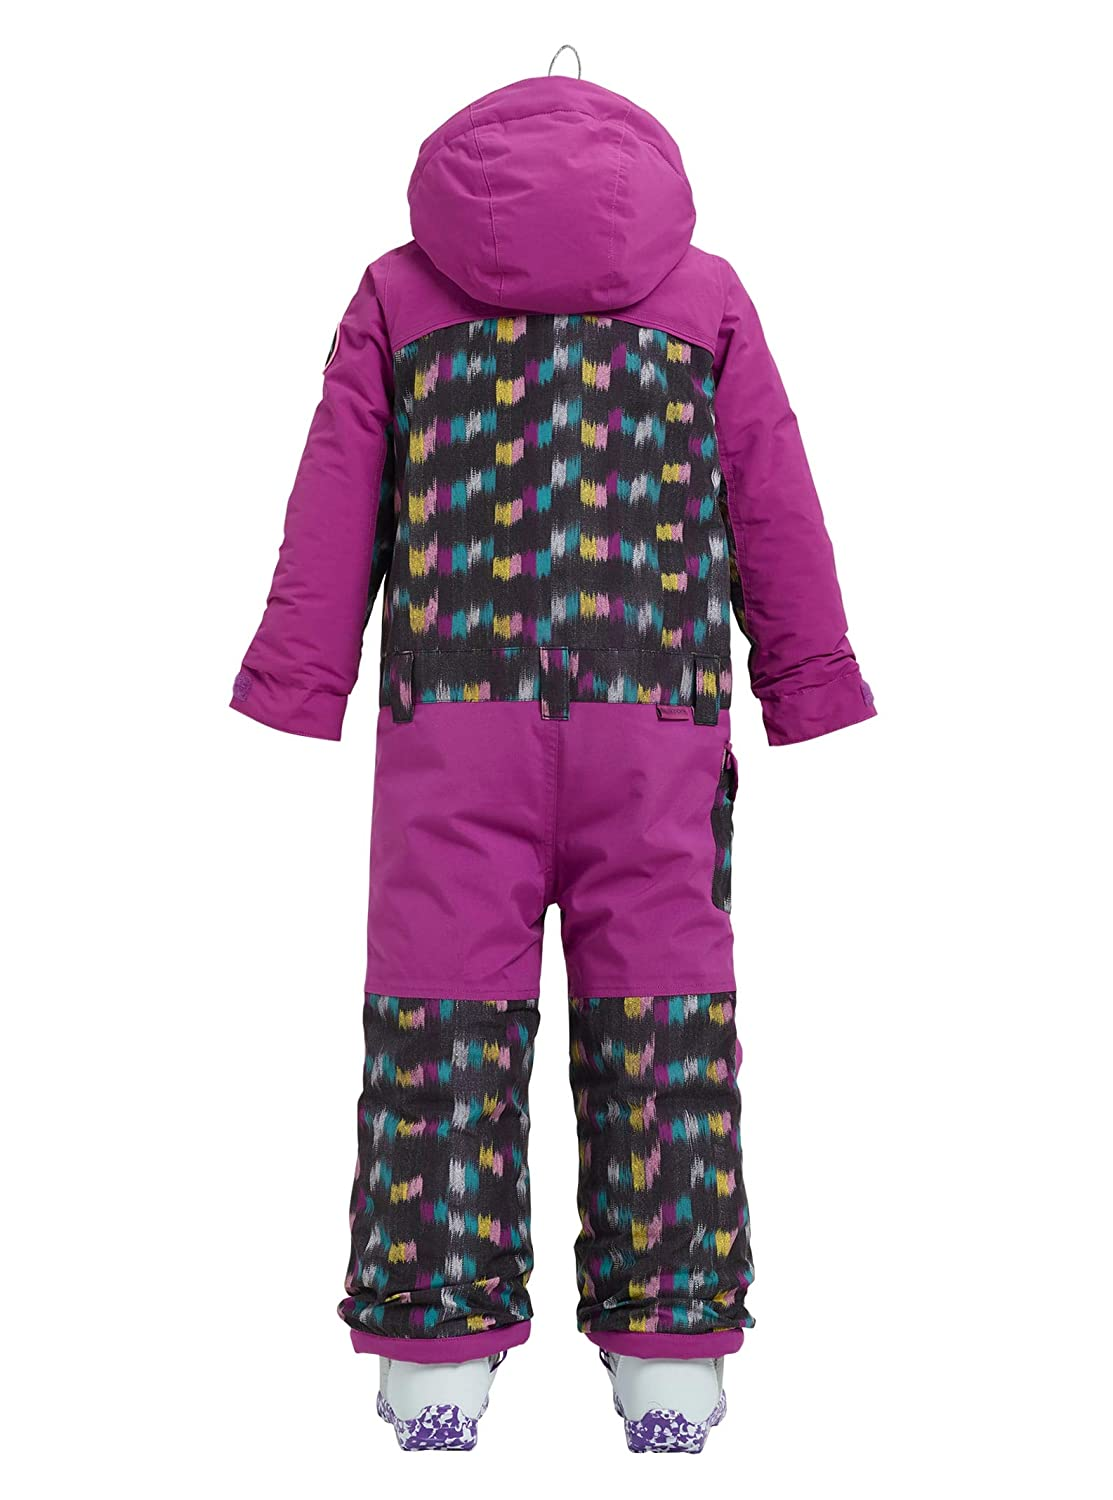 565b16707 Amazon.com : Burton Toddler Girls' Illusion One Piece Snow Suit : Clothing